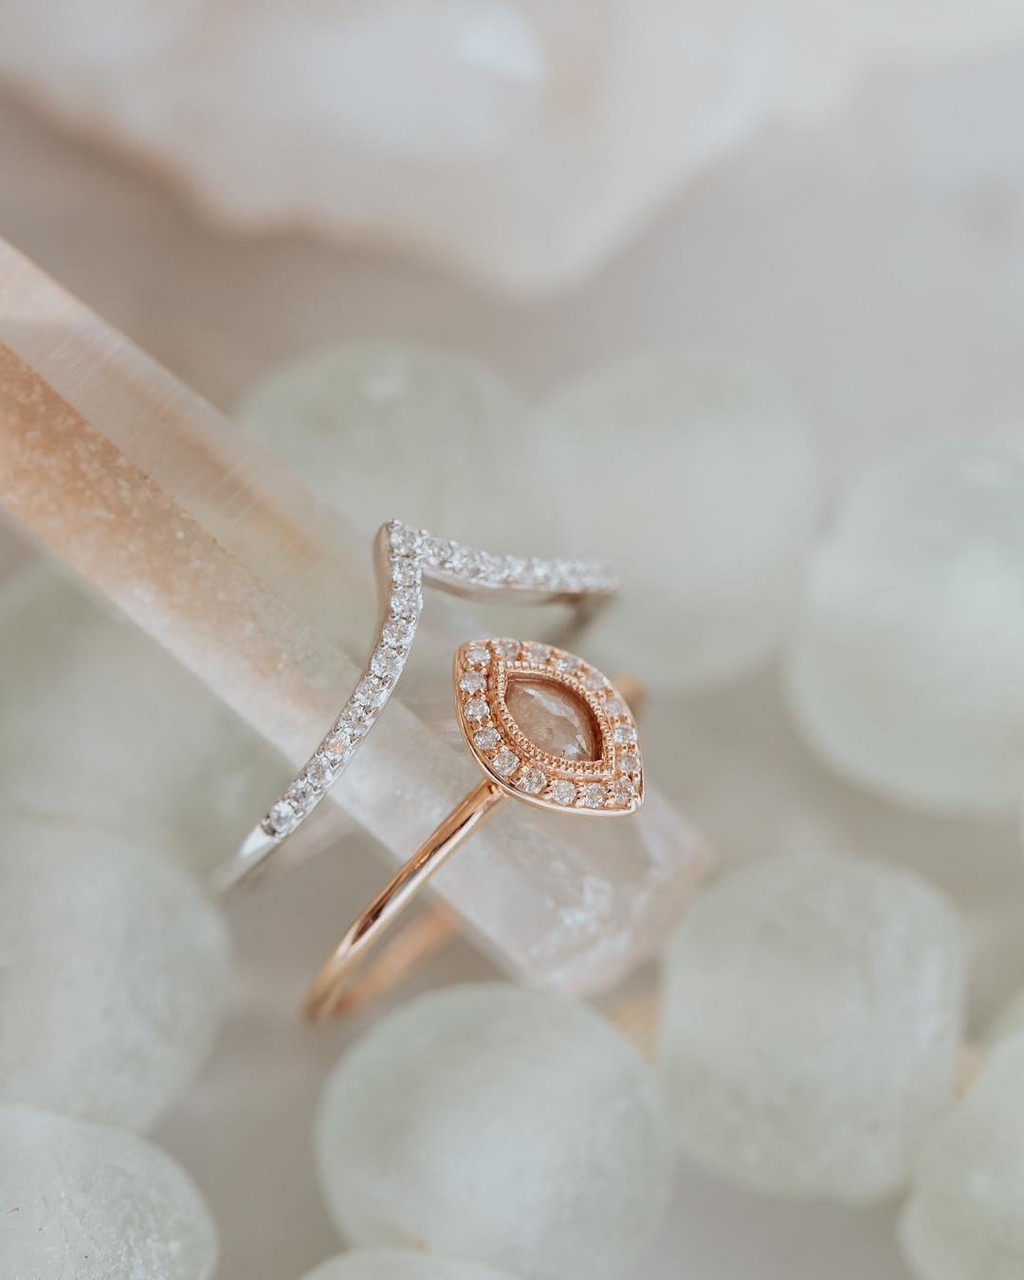 Our pave tracer band in 14k white gold is a fun addition to any ring! ✨